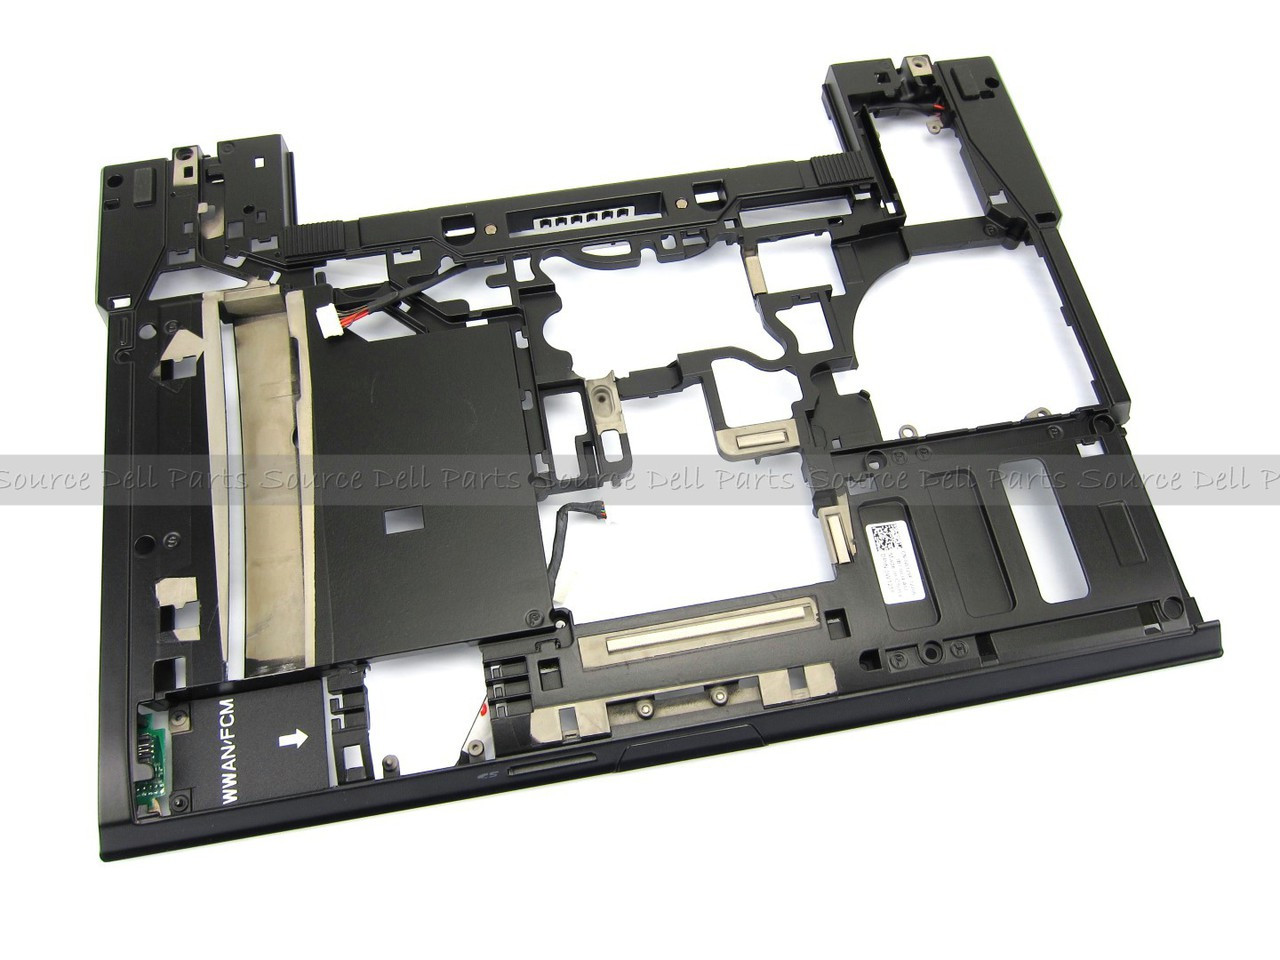 Dell Latitude E6400 ATG Laptop Bottom Base Cover Assembly - W125F (A)